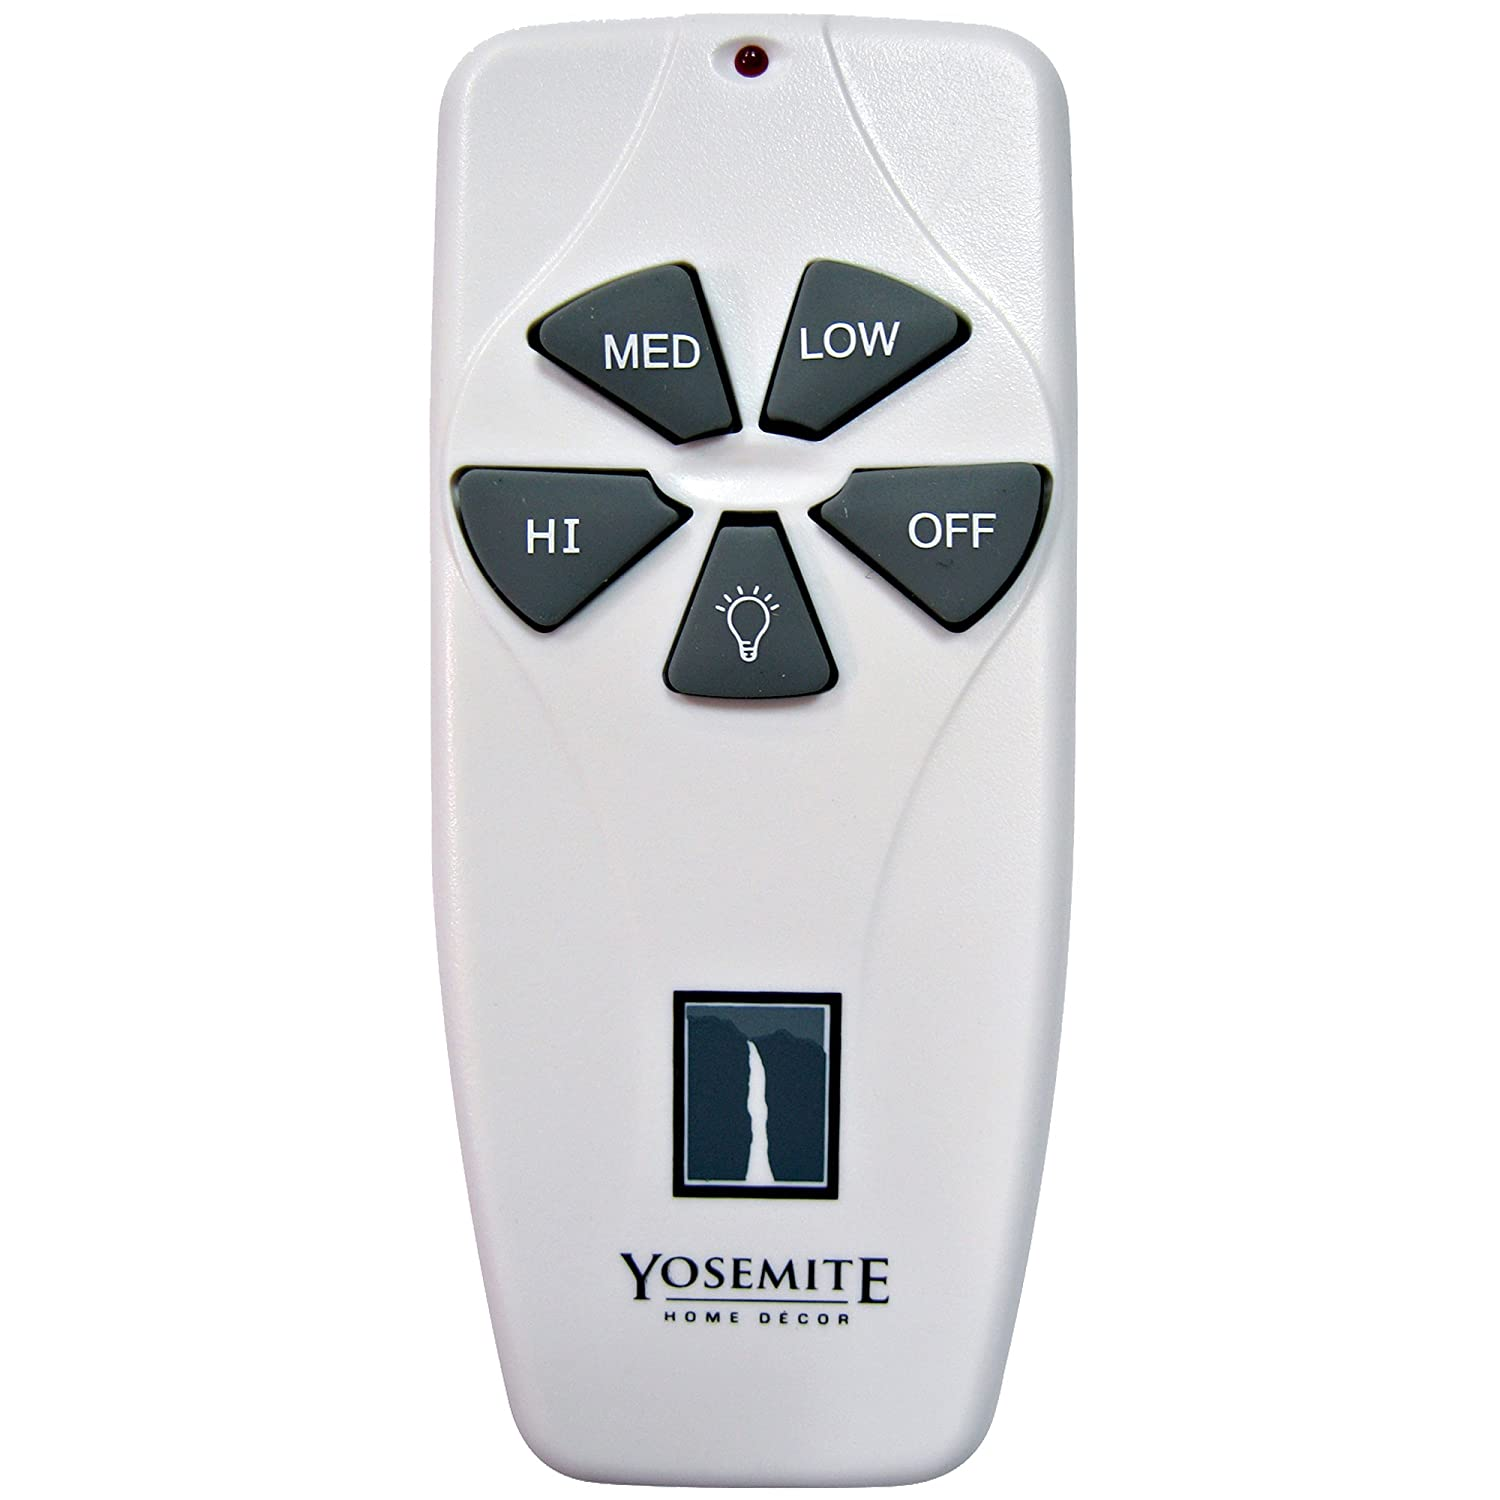 Yosemite Home Decor CANOPY REMOTE 4 75 Inch Remote Control with